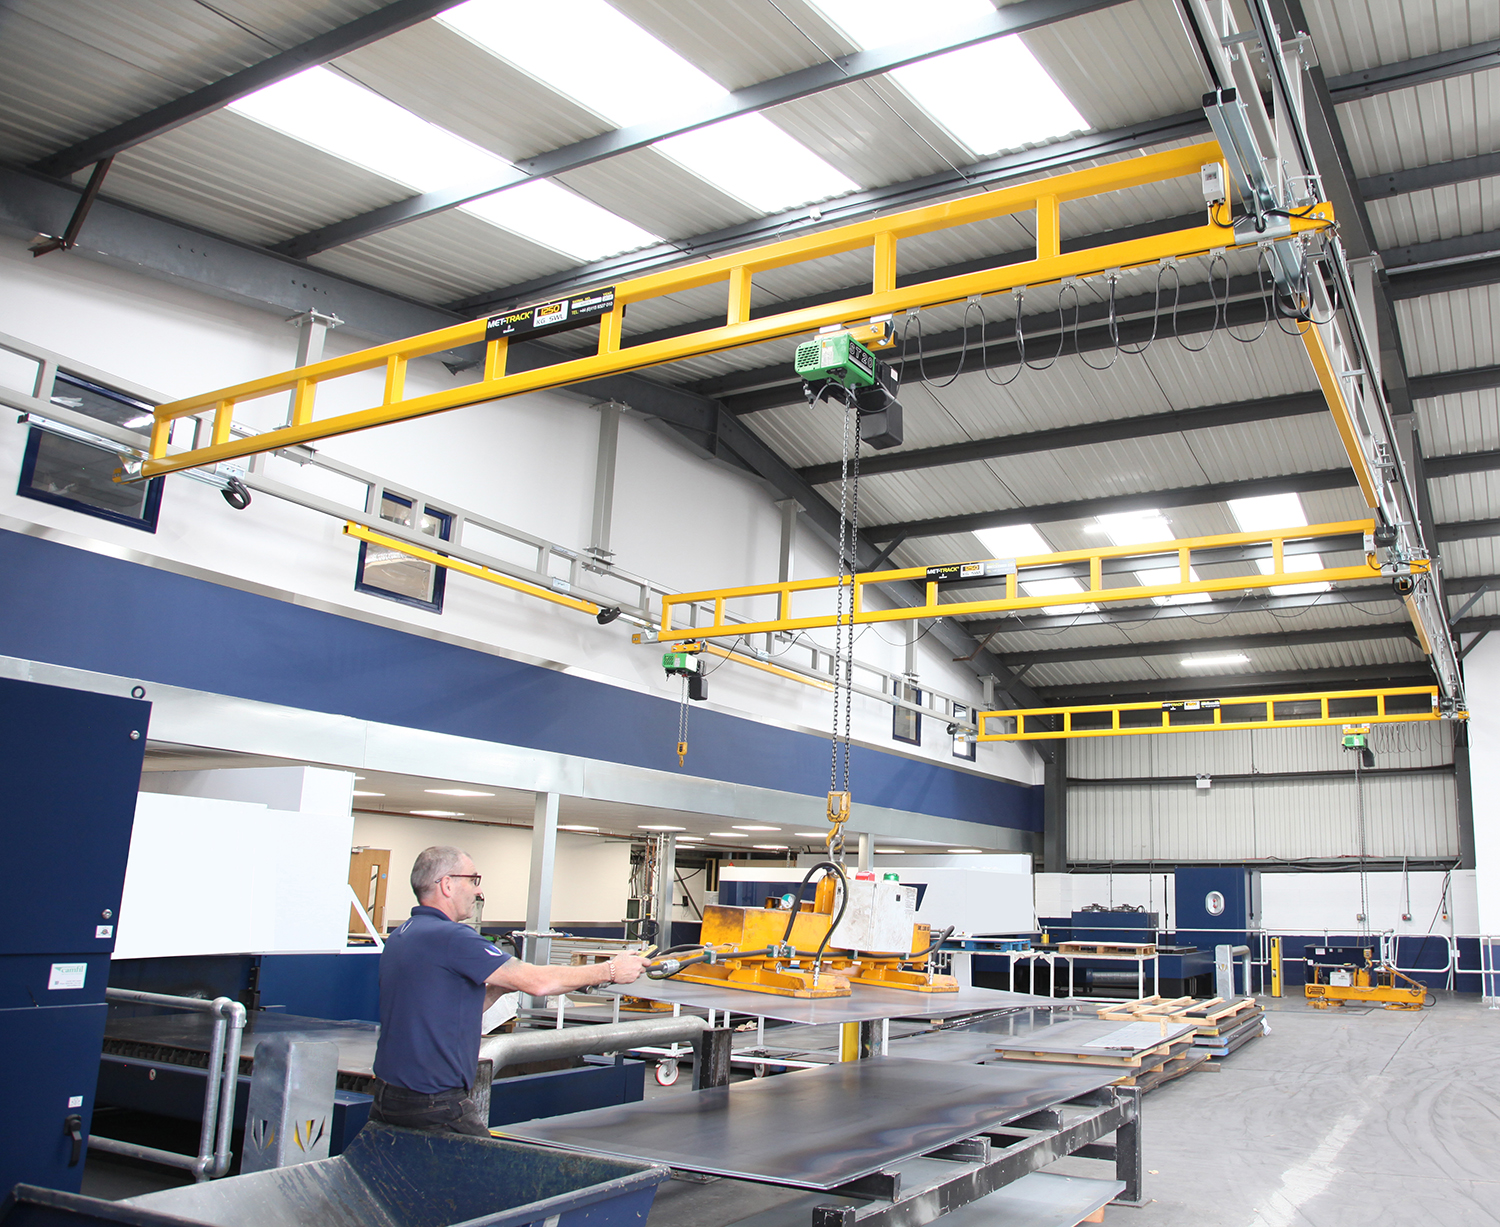 MET-TRACK Ceiling mounted workstation crane with multiple bridges